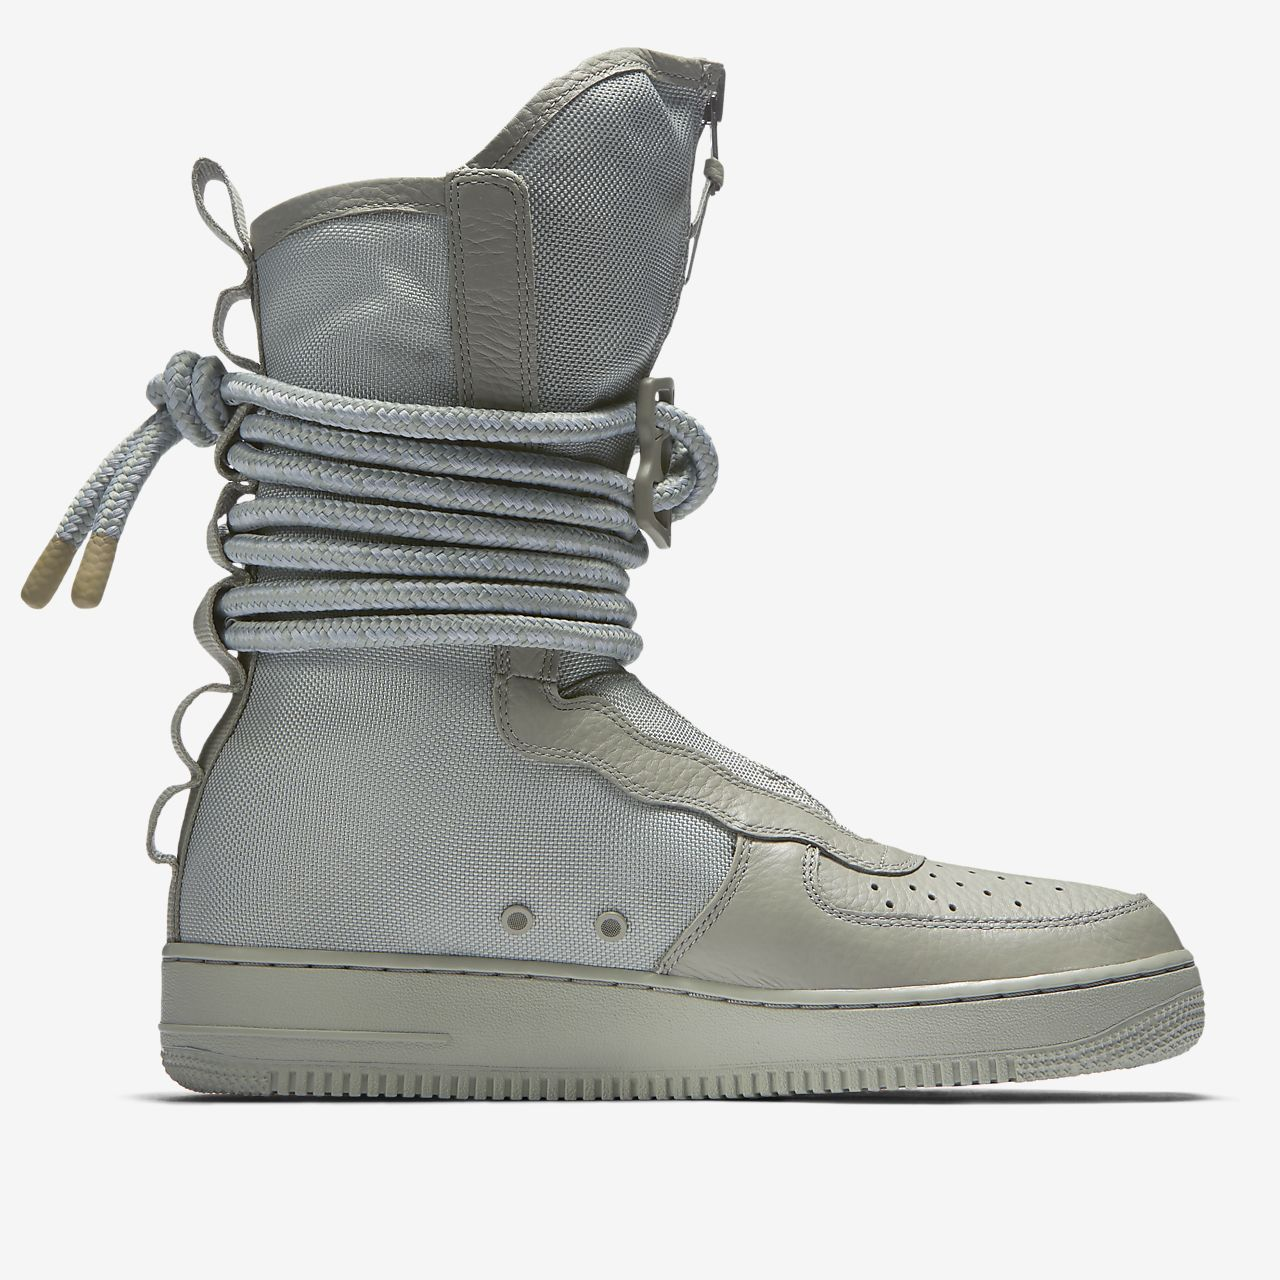 Nike SF Air Force 1 Hi Men's Lifestyle Boots Grey/White jG8797A